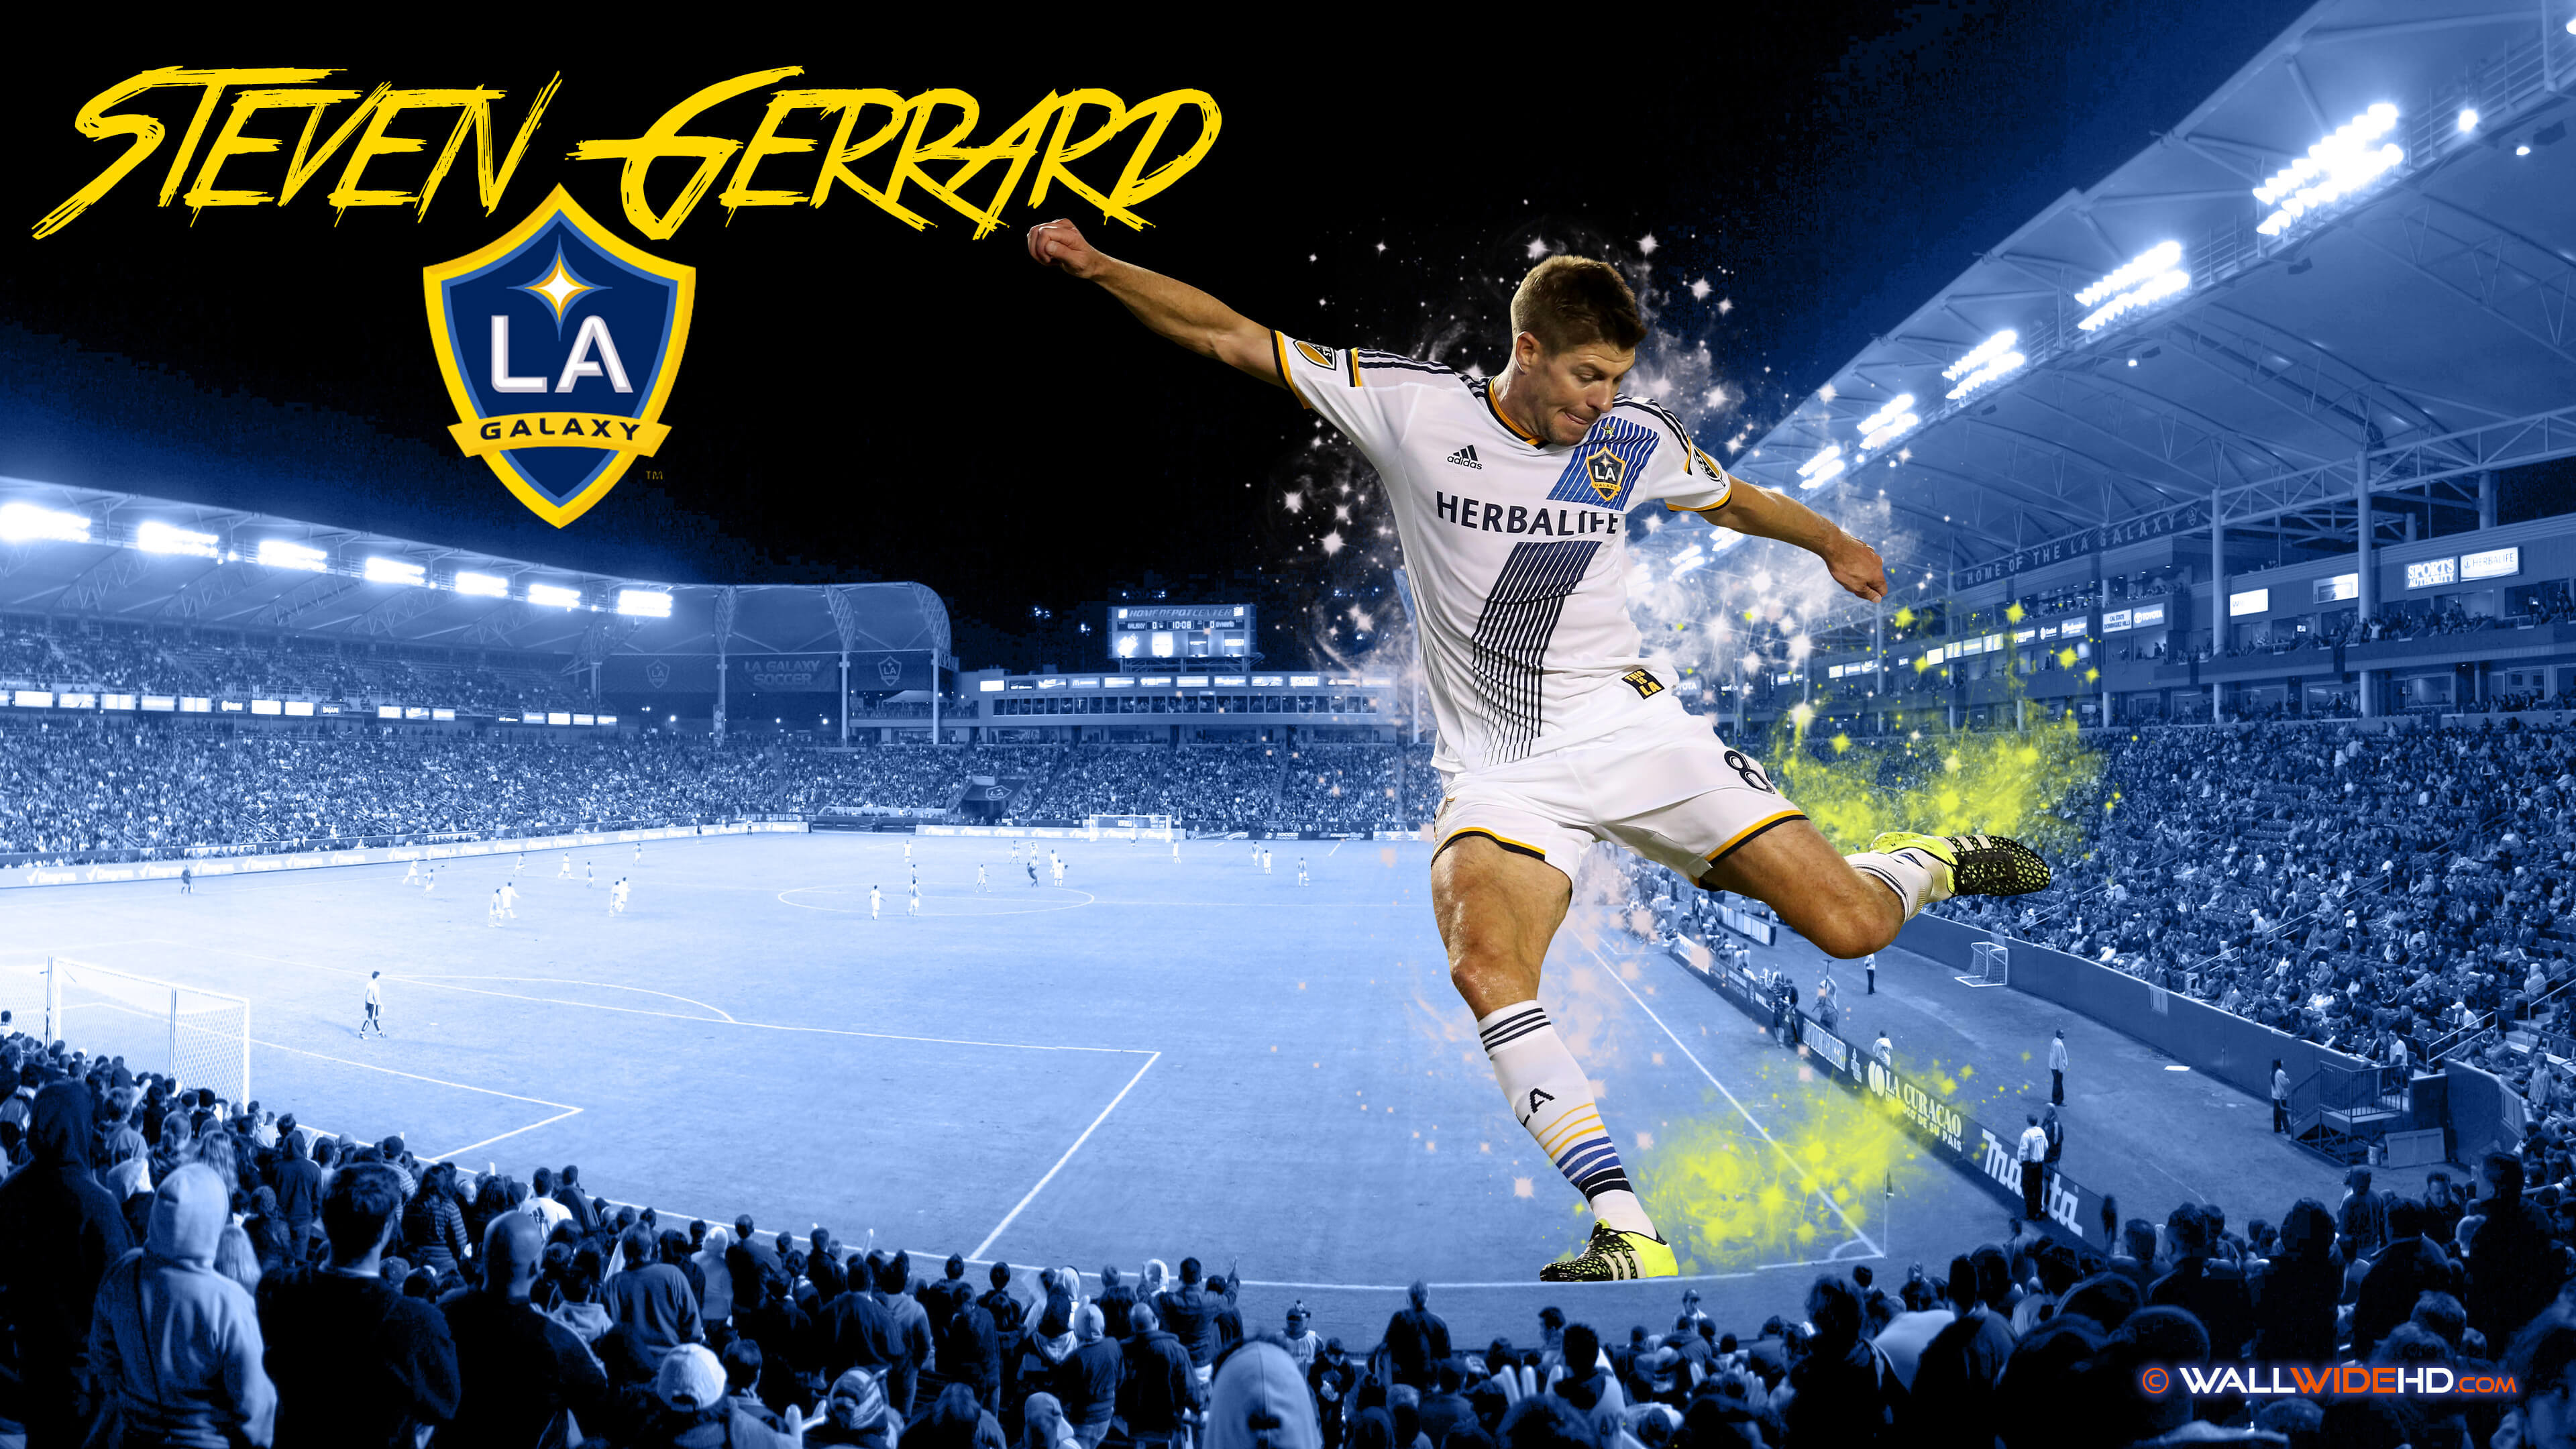 Res: 3840x2160, Description: Download Steven Gerrard 2015 MLS LA Galaxy HD & Widescreen  Wallpaper ...